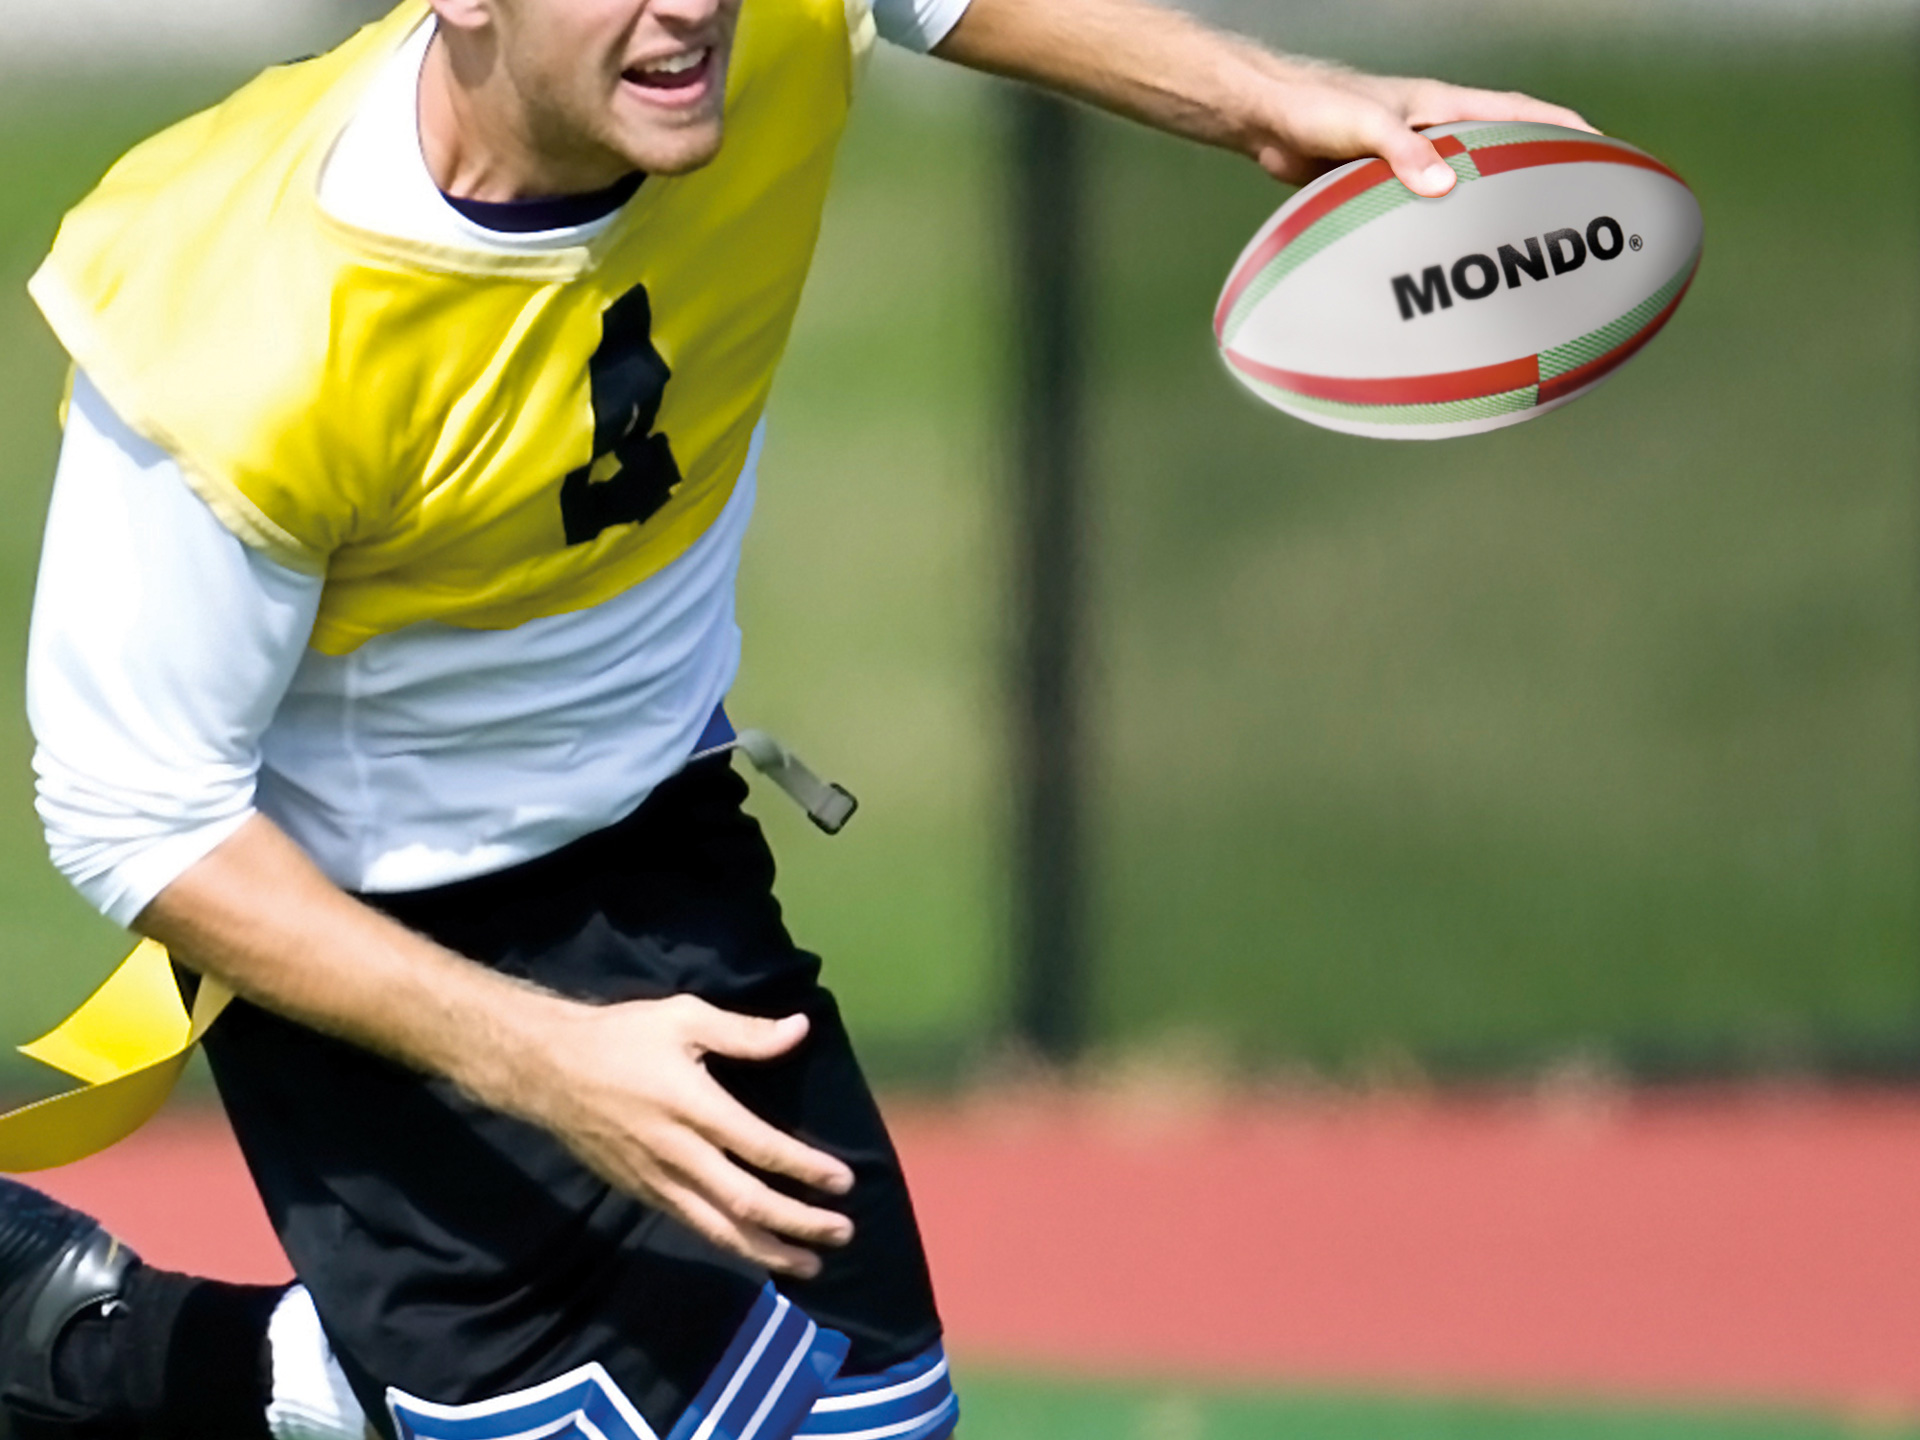 Mondo Sports Rugby